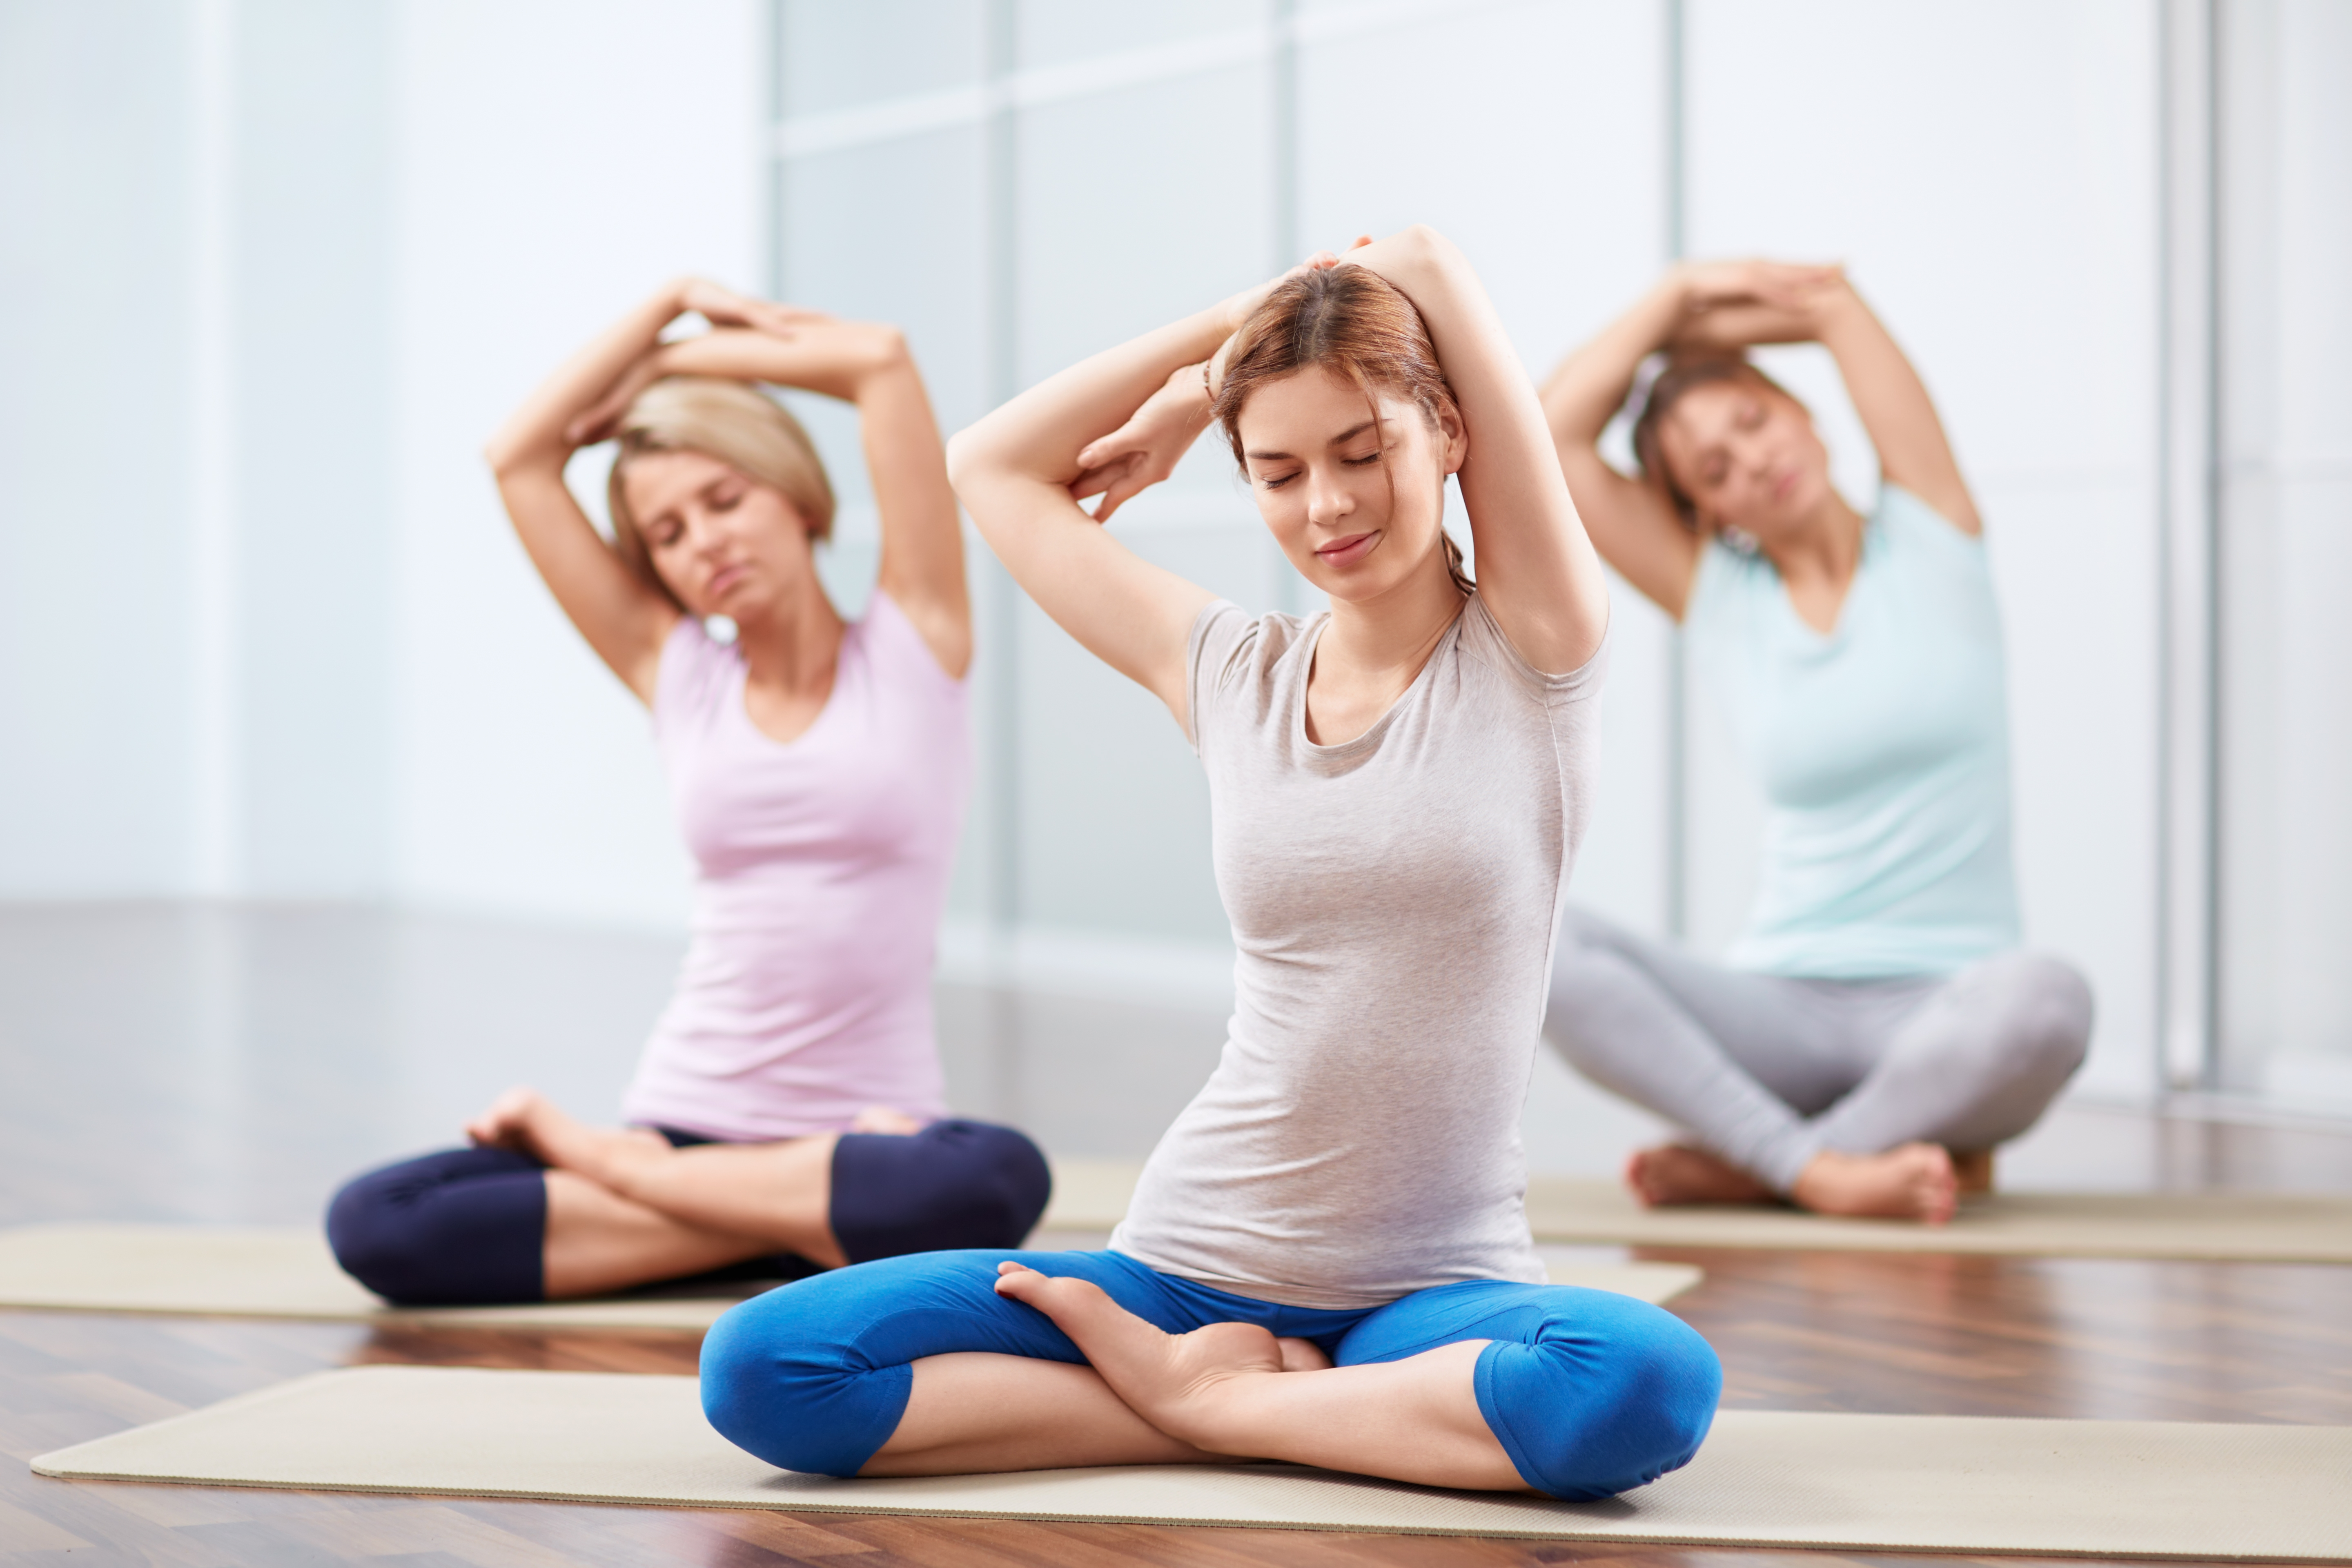 Daily Yoga Practice: A Way to Improved Health